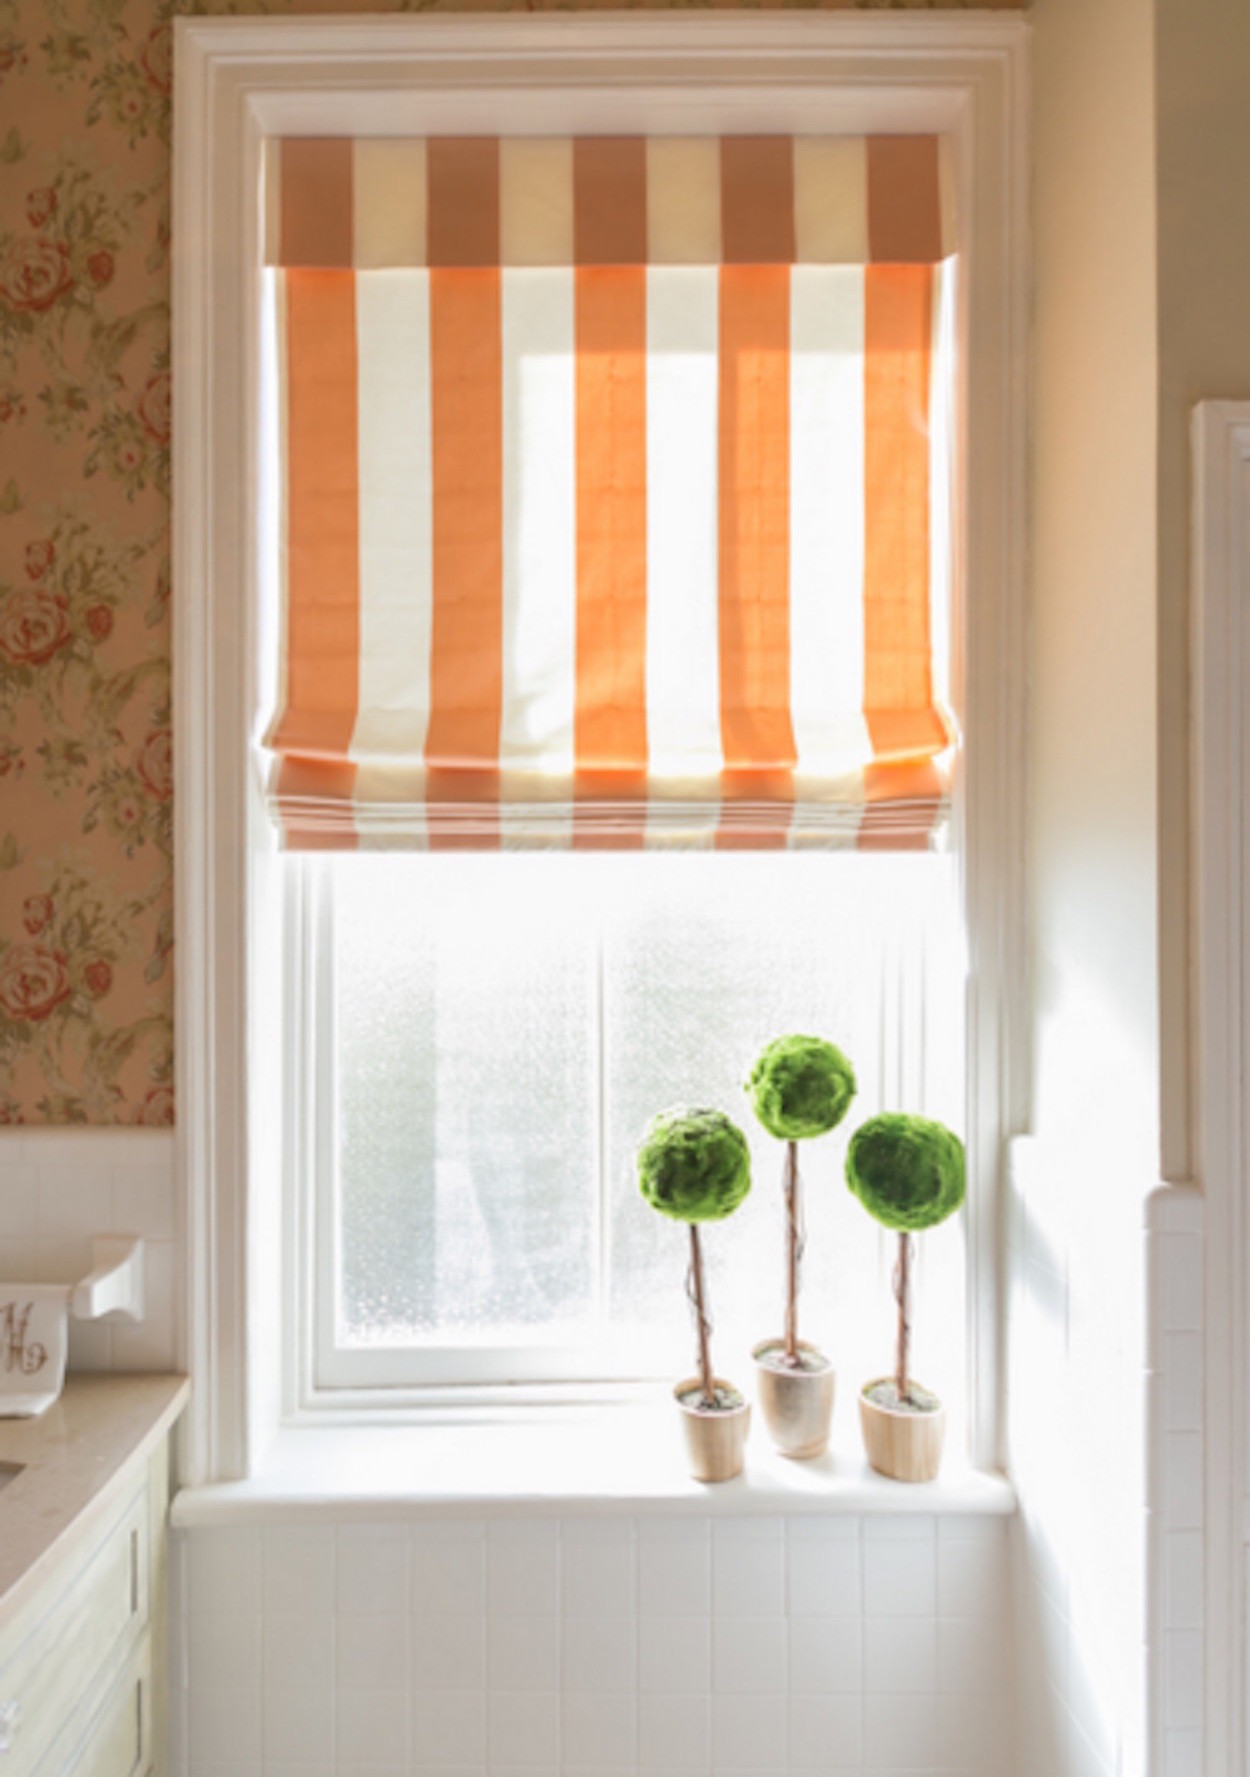 Window Treatment Ideas: 7 Different Bathroom Window Treatments You Might Not Have